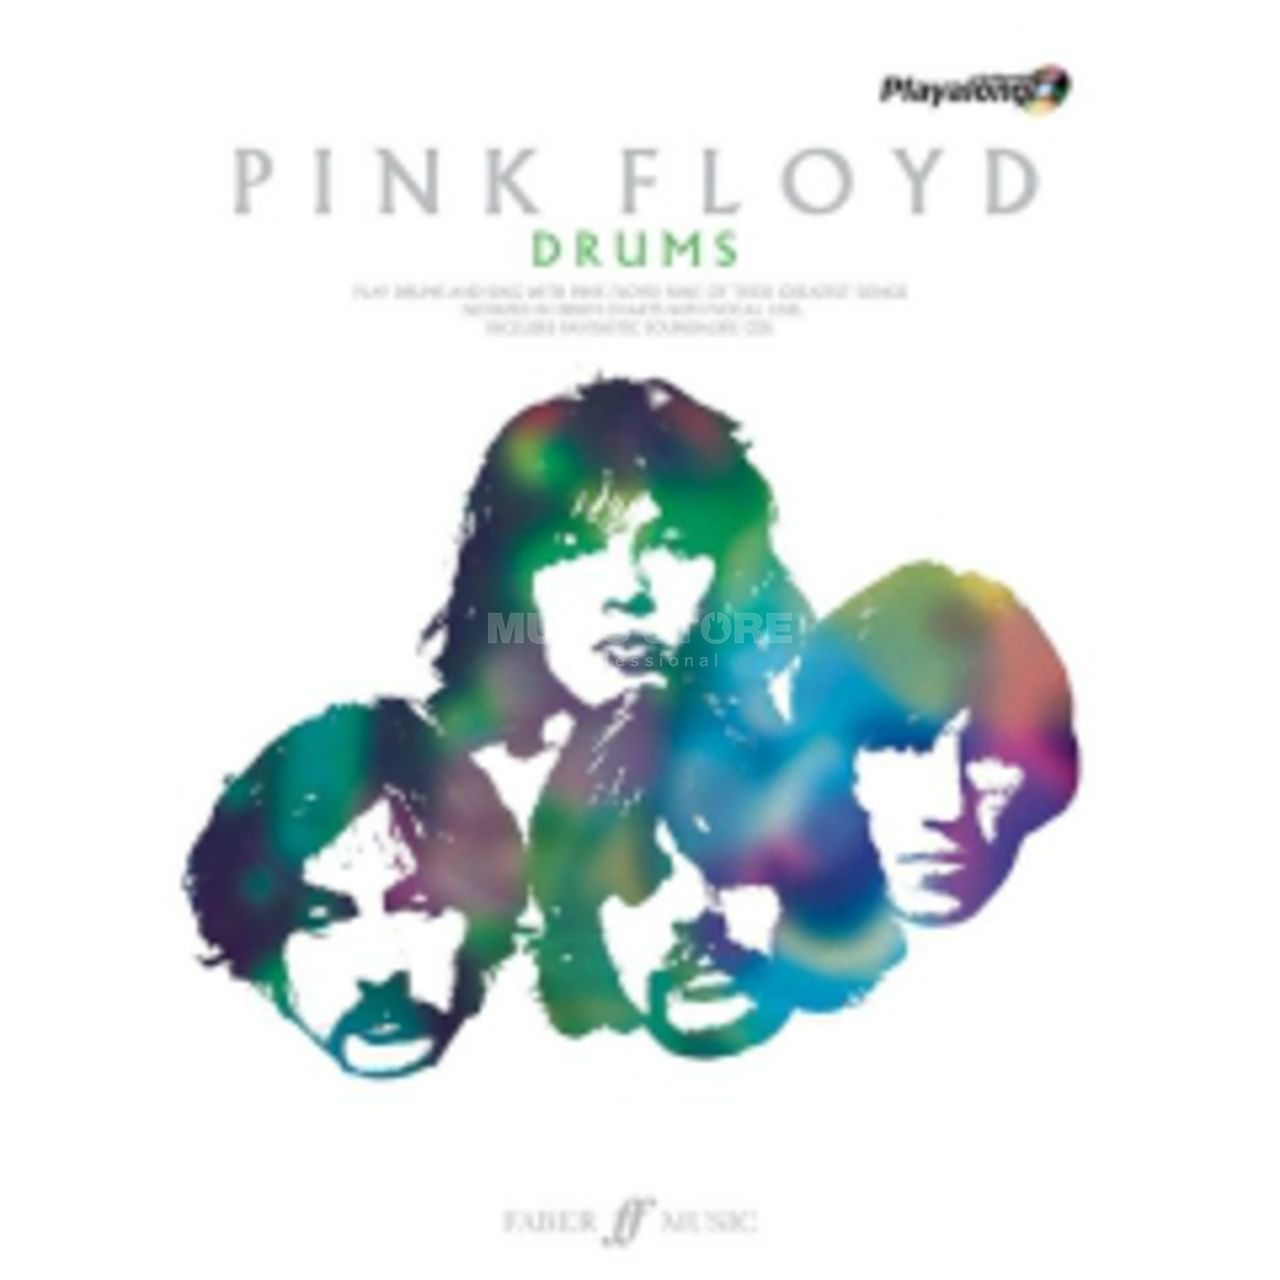 Have a cigar pink floyd download songs